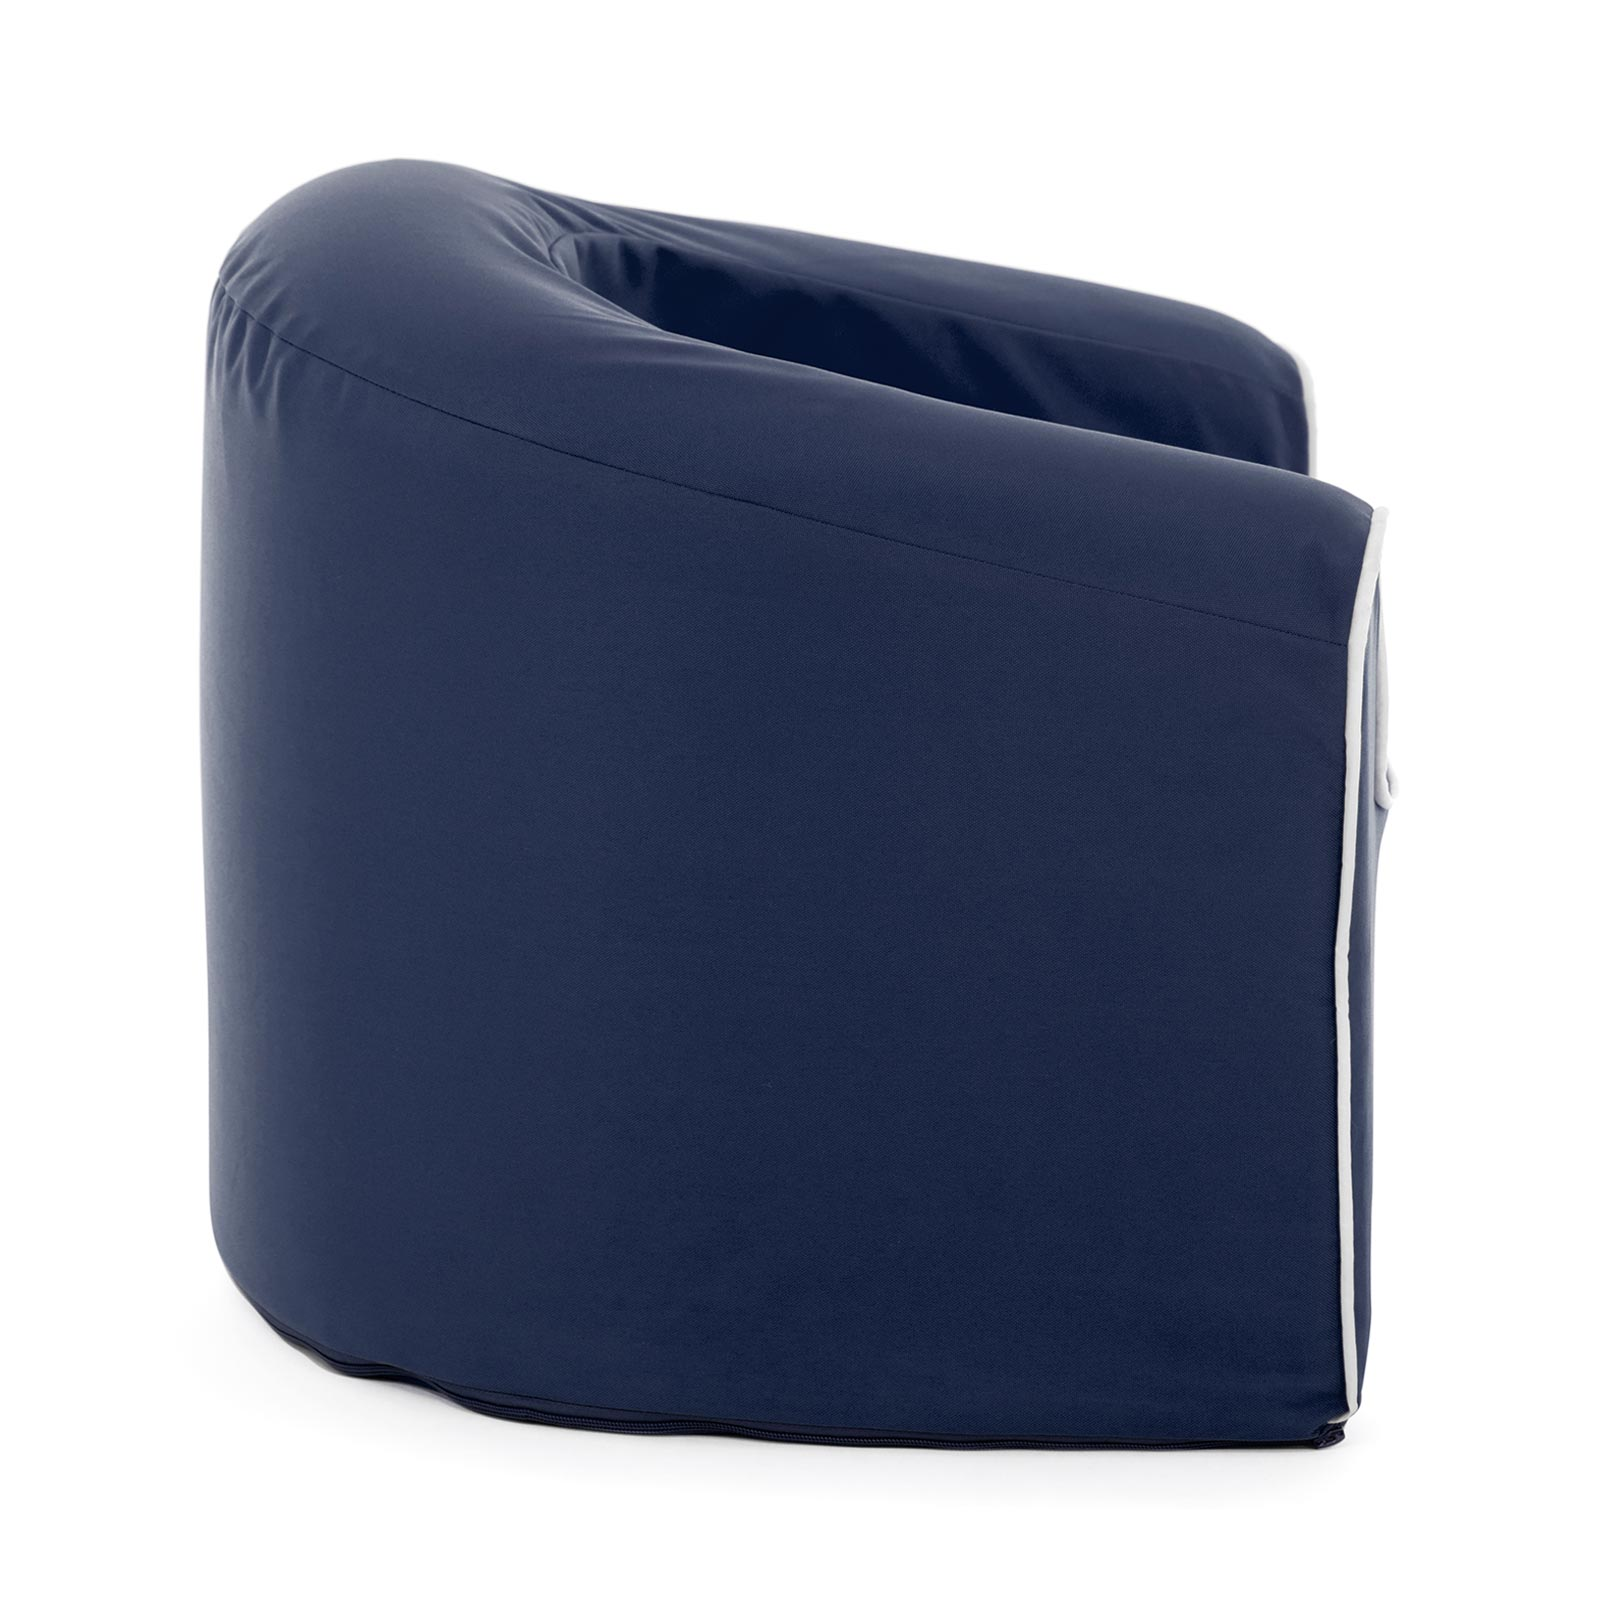 Side view of the crown blue pop armchair kids seat